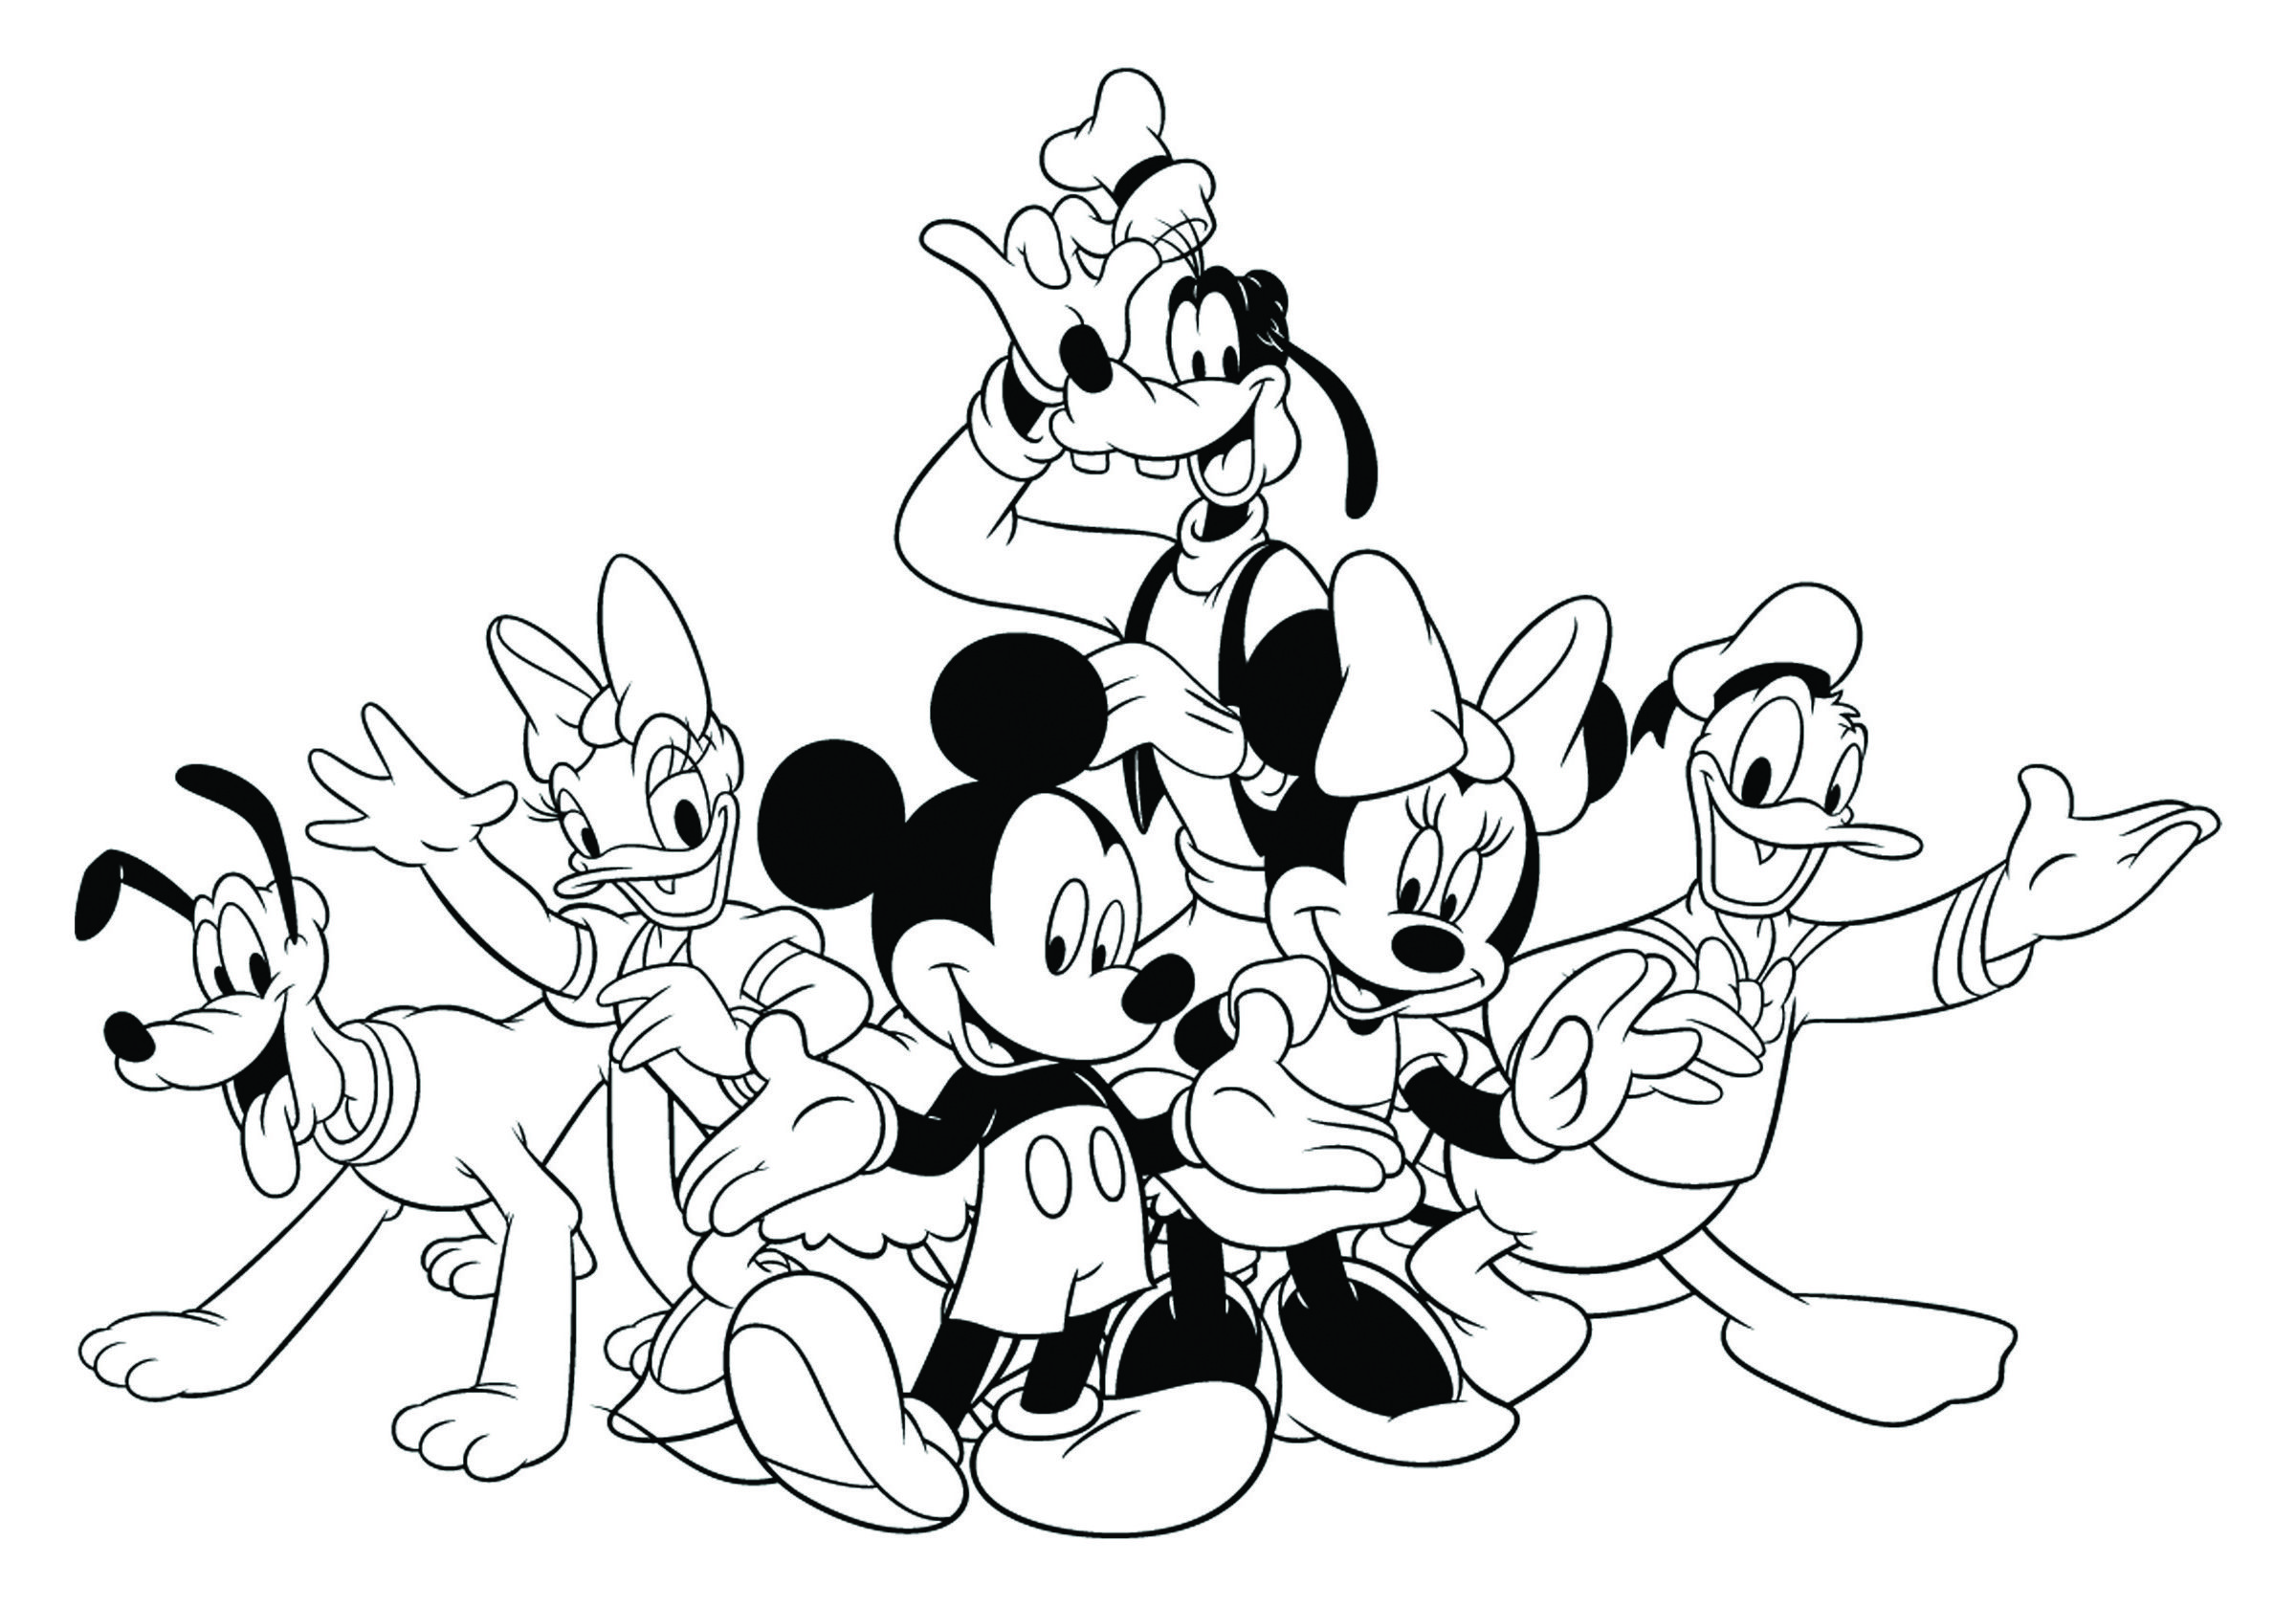 Disney Mickey S Typing Adventure Coloring Page Disney Family Disney Coloring Sheets Mickey Coloring Pages Mickey Mouse Coloring Pages